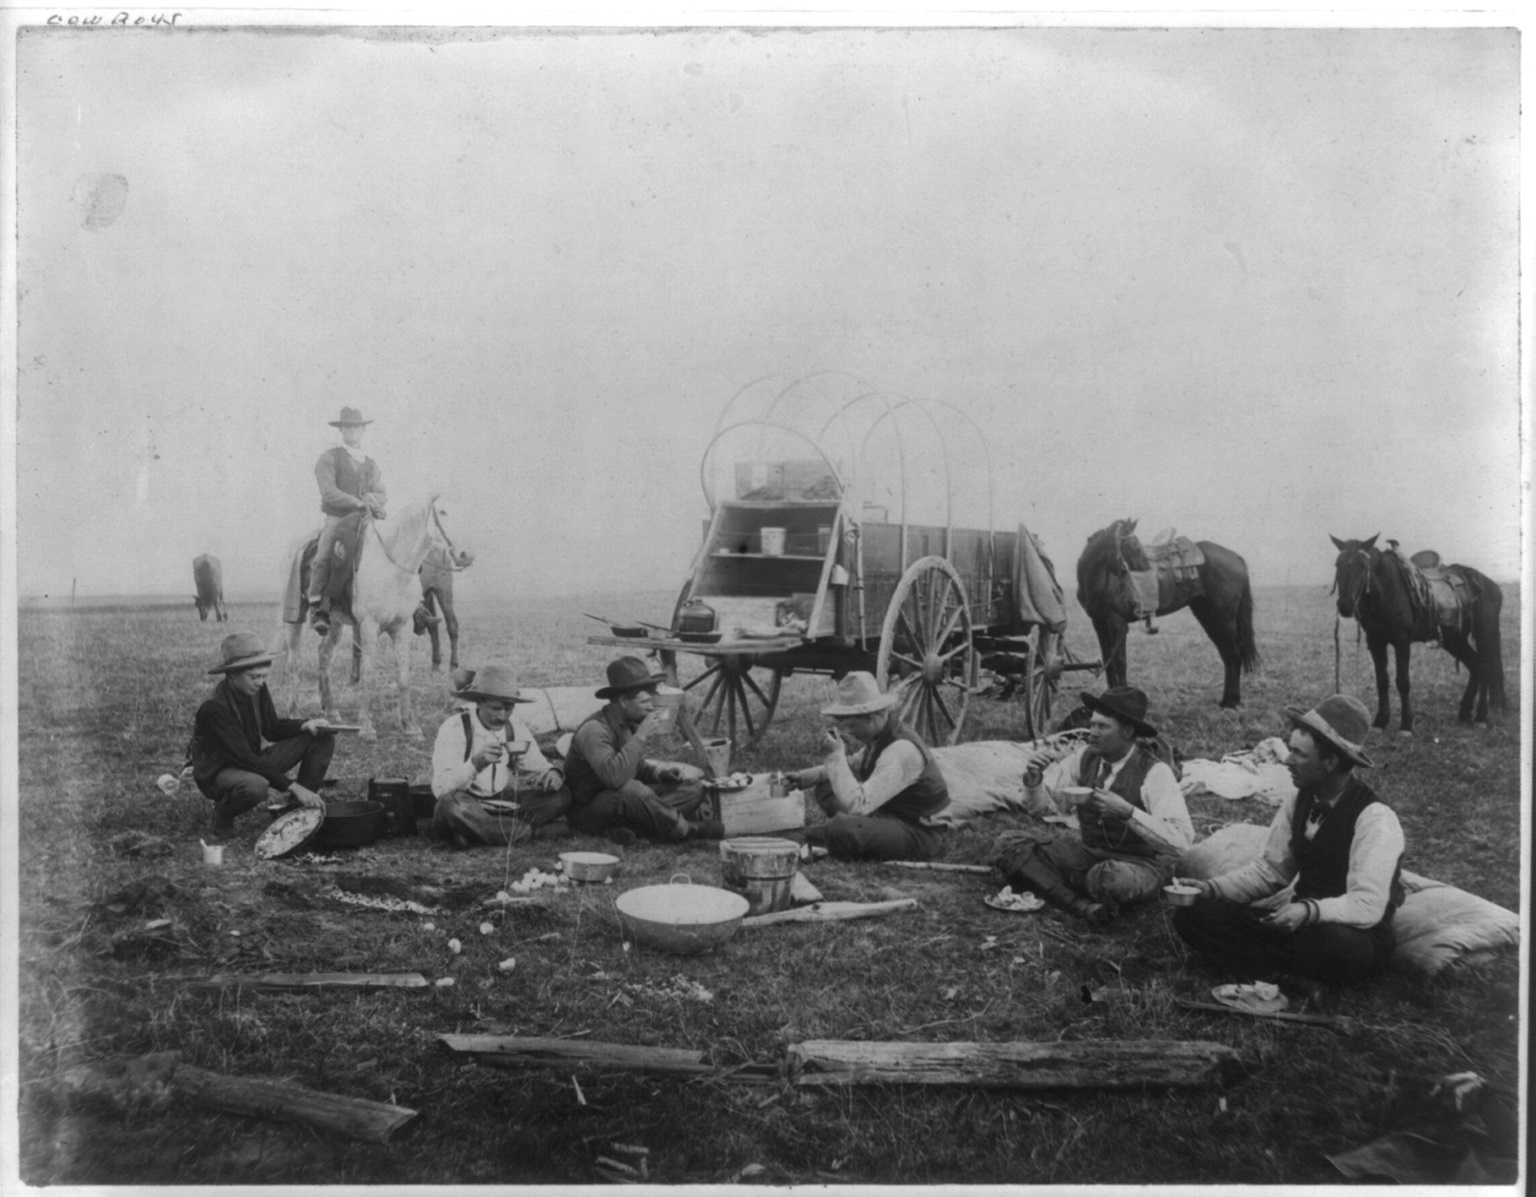 Cowboys eating out on the range, chuck wagon in background